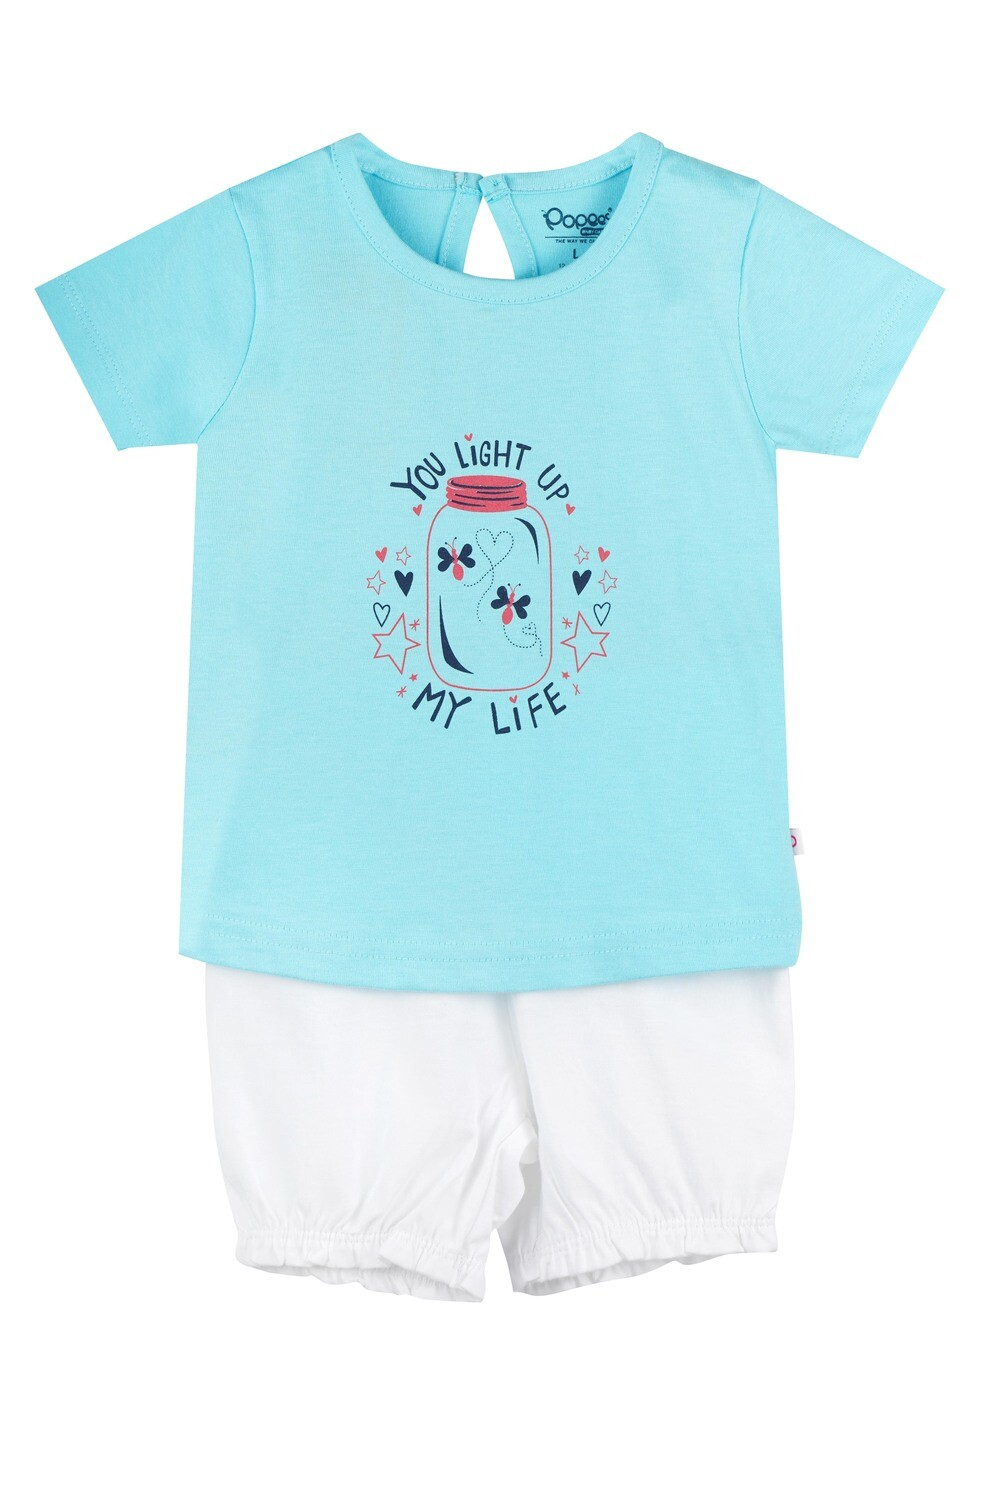 UNICORN Tanager Turquoise Half sleeve Top and Trouser for Baby Girls